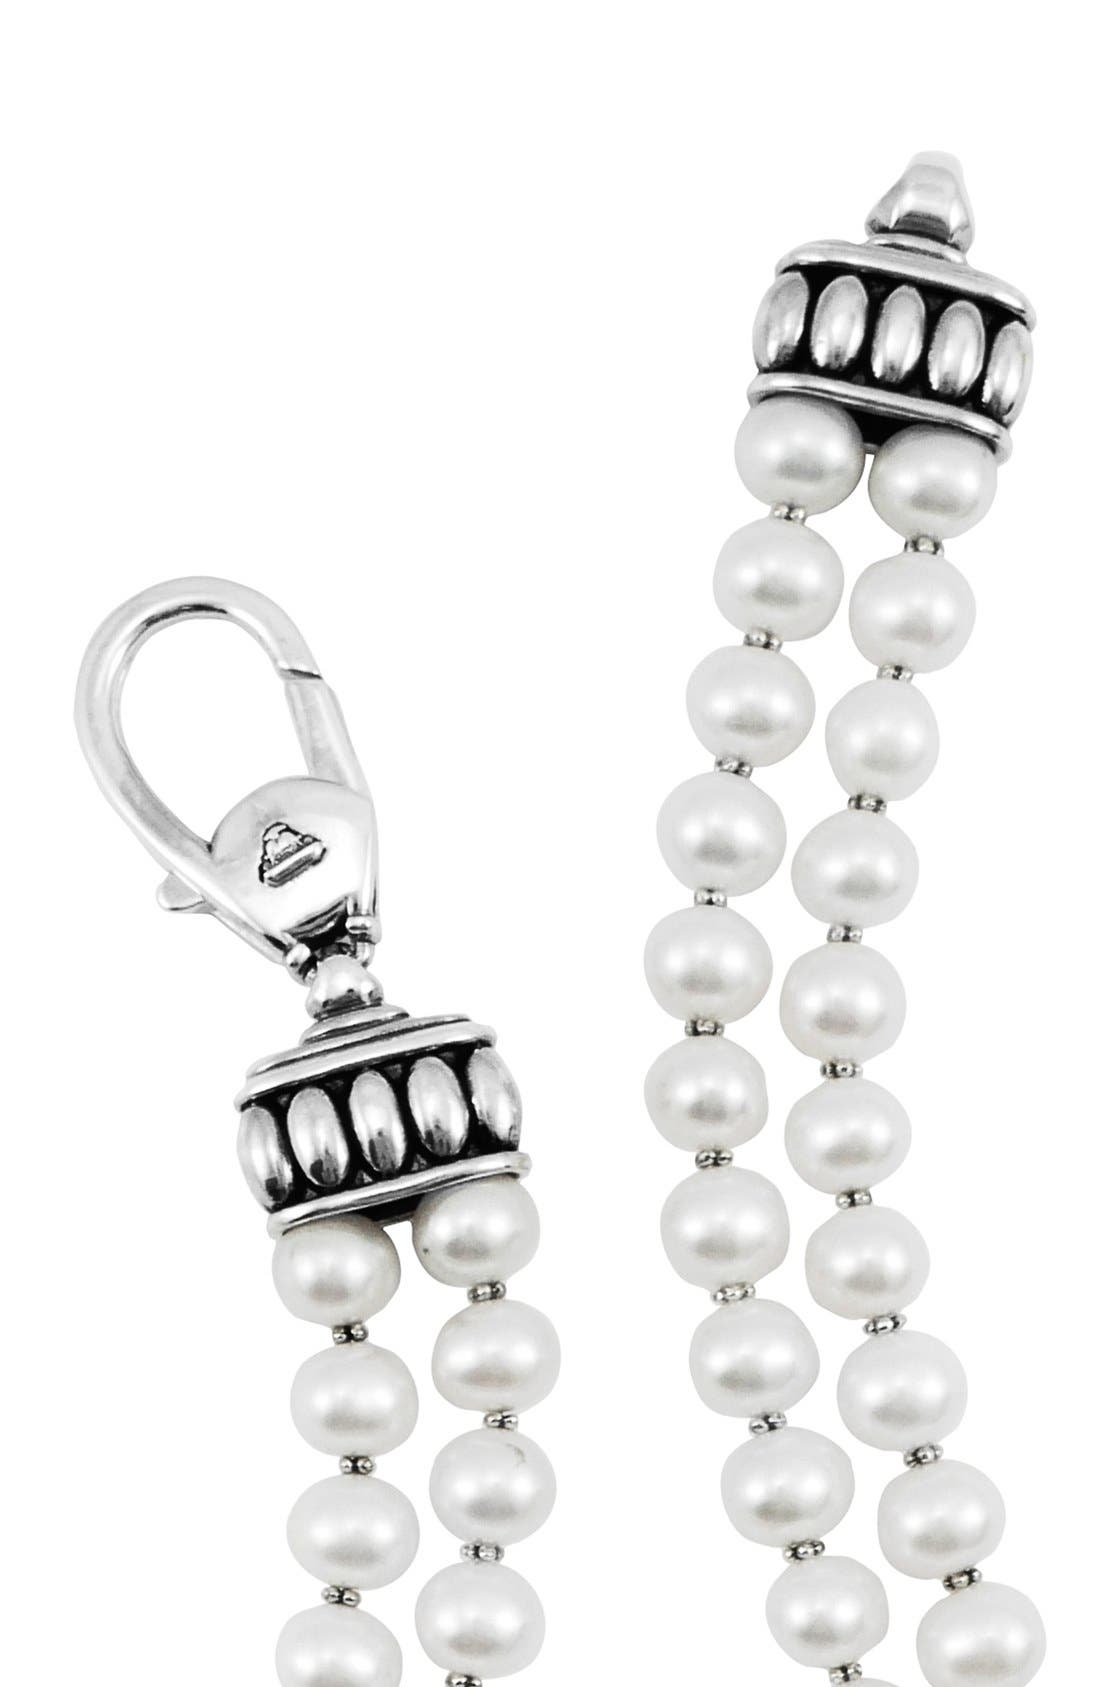 'Luna' Double Row Pearl Necklace,                             Alternate thumbnail 4, color,                             Silver/Pearl